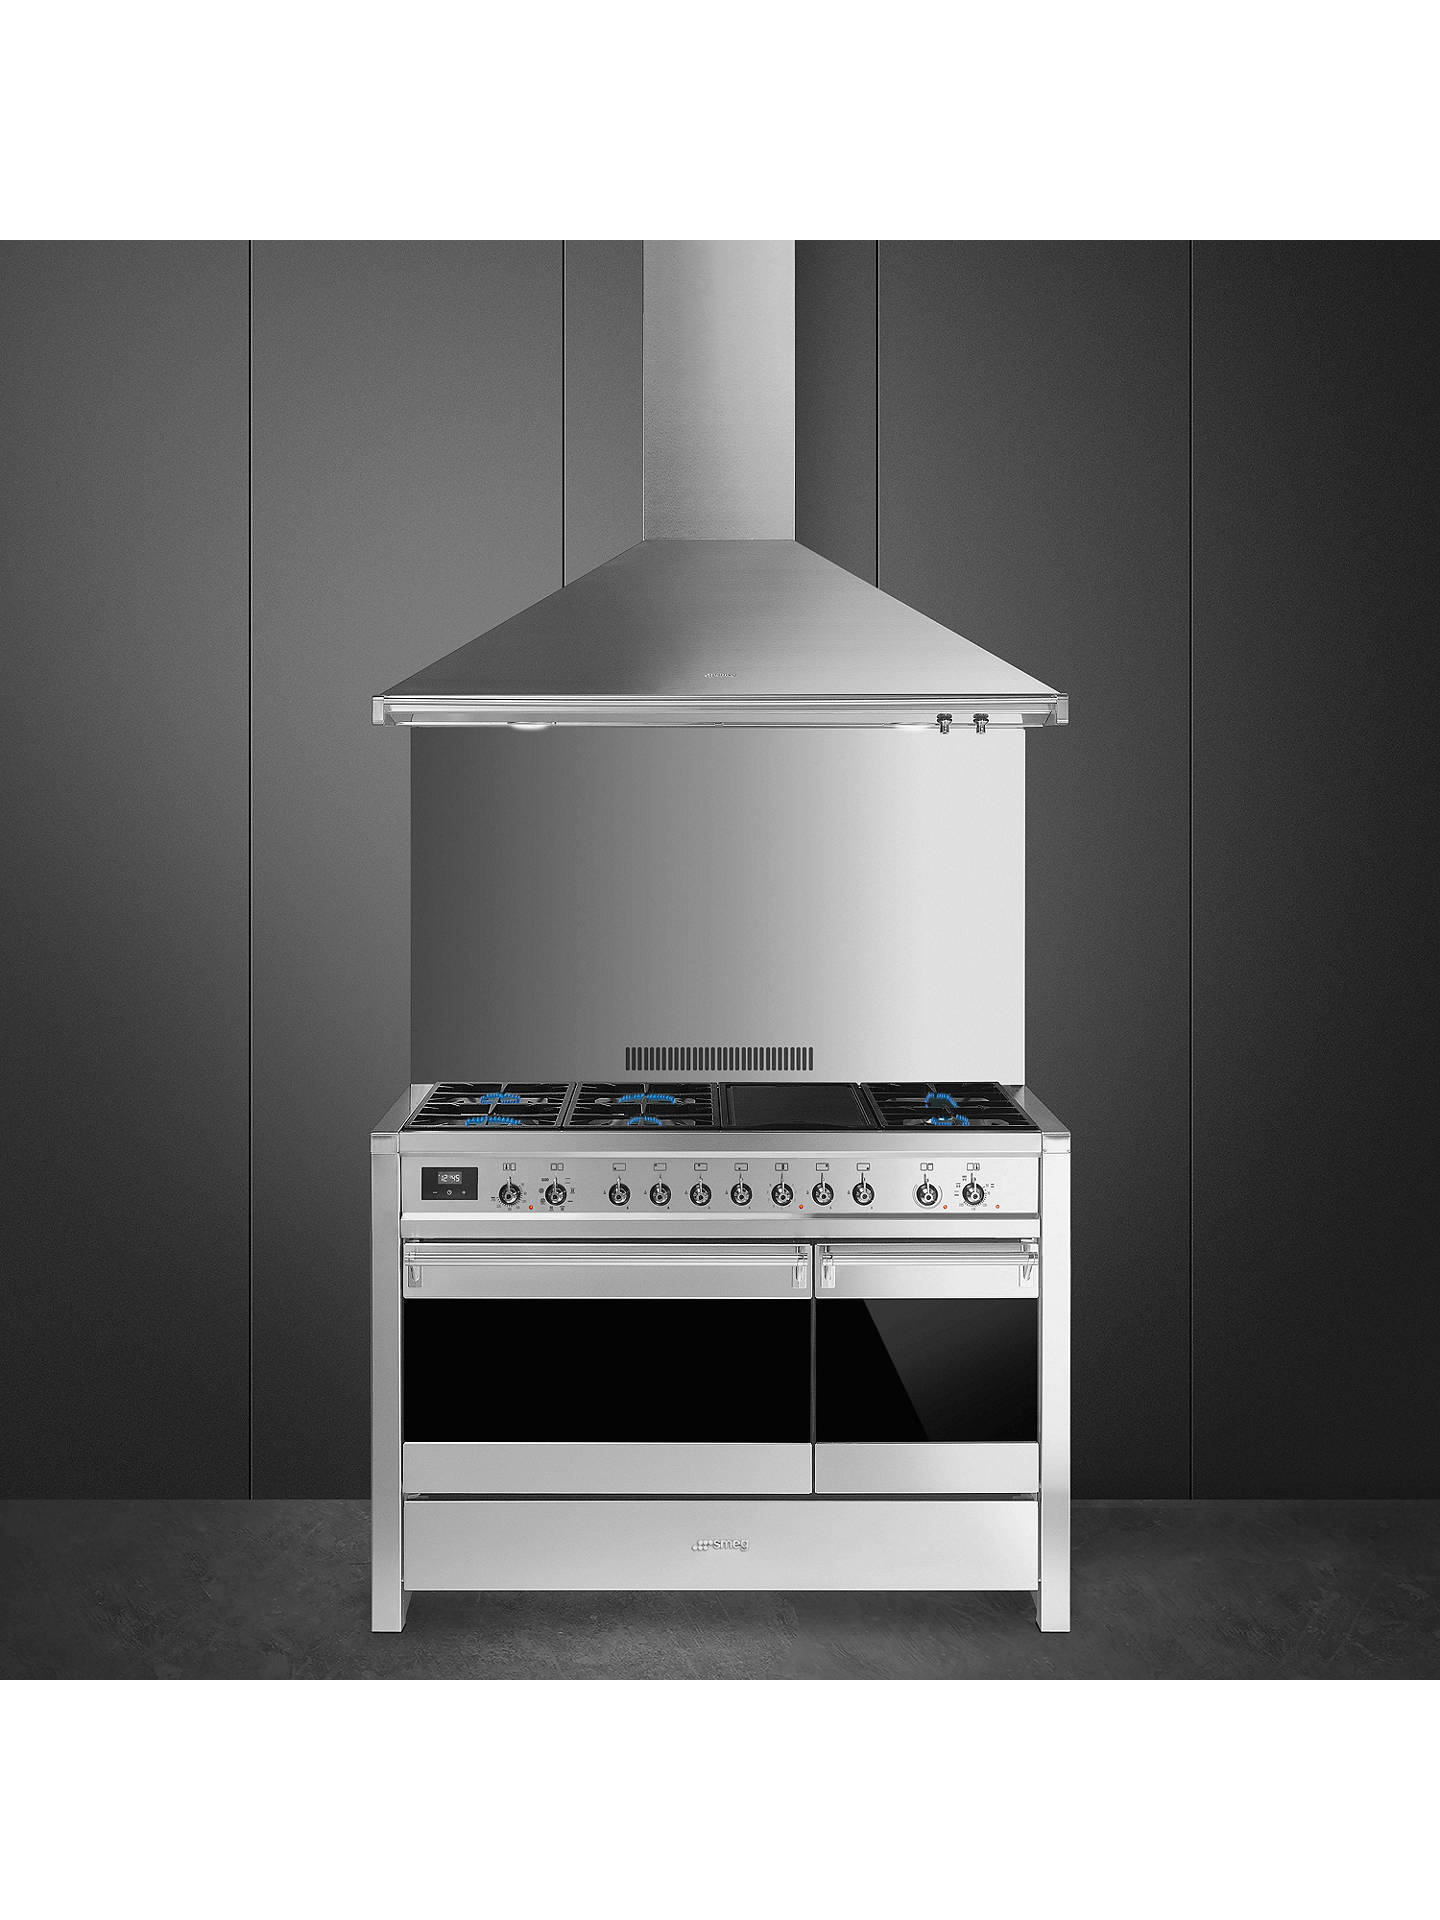 BuySmeg A3-81 Opera Dual Fuel Range Cooker, Stainless Steel Online at johnlewis.com